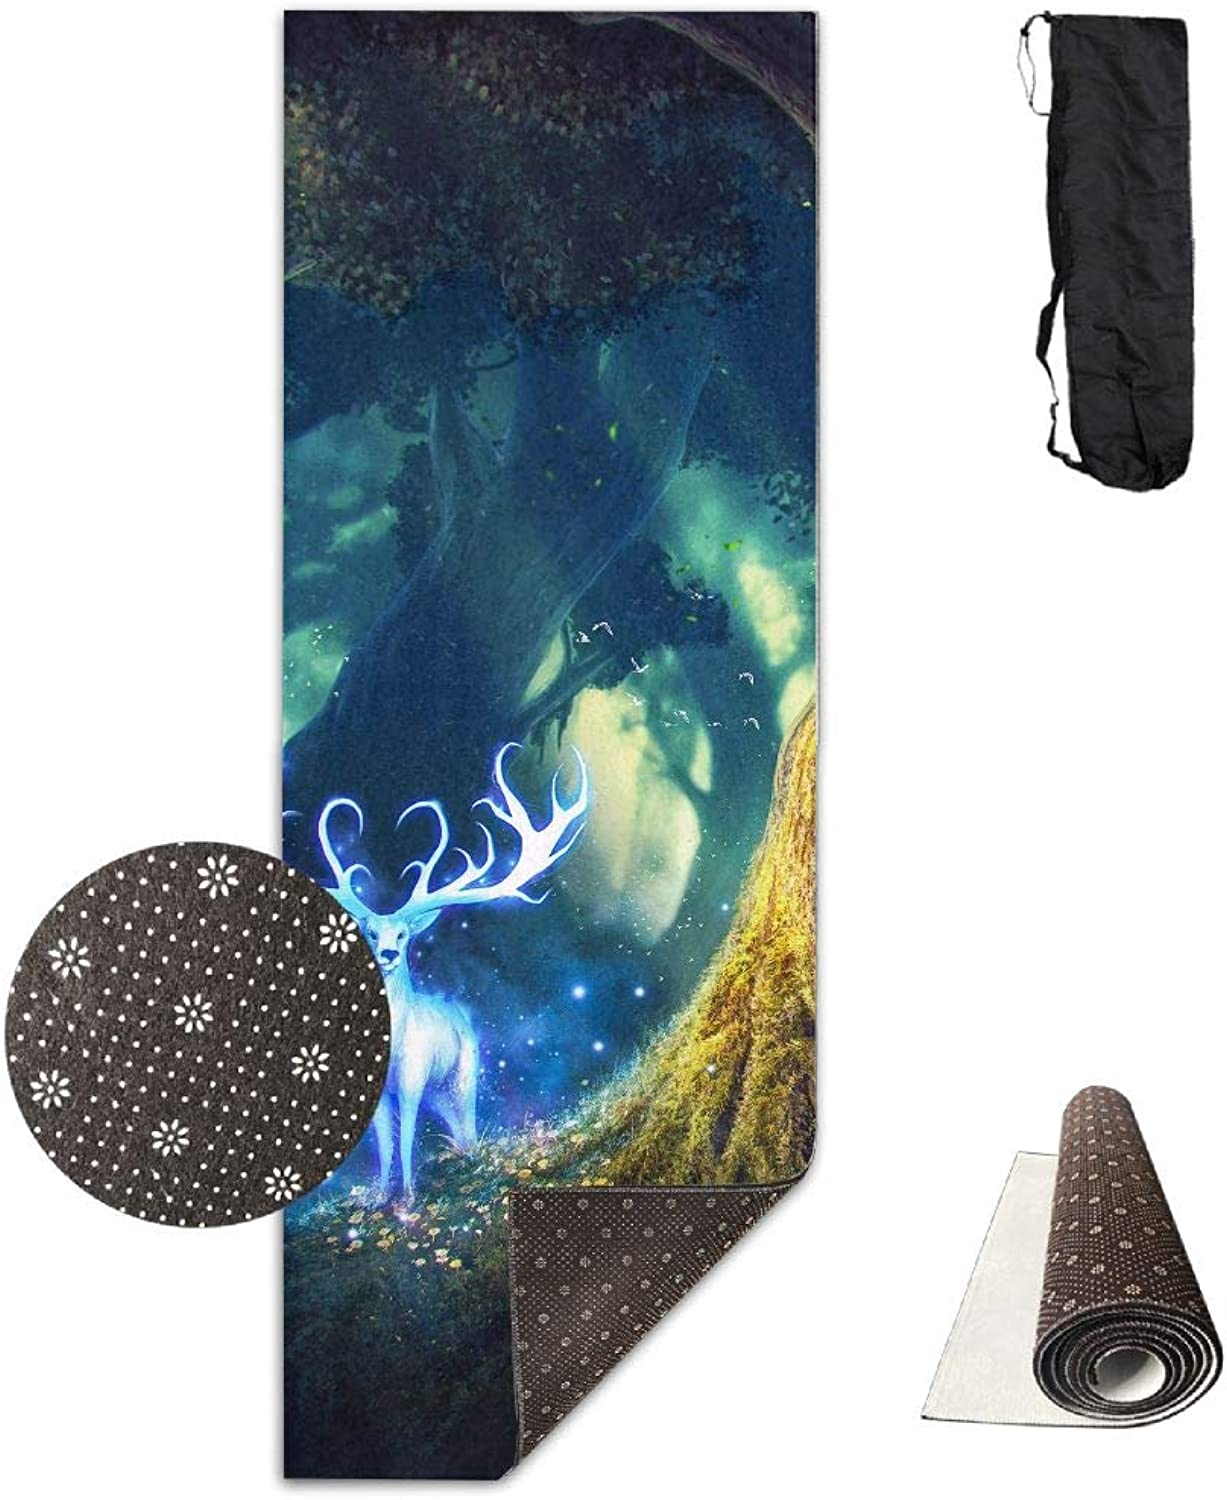 Yoga Mat Non Slip 24  X 71  Exercise Mats Fantasy Deer in Forest Premium Fitness Pilates Carrying Strap